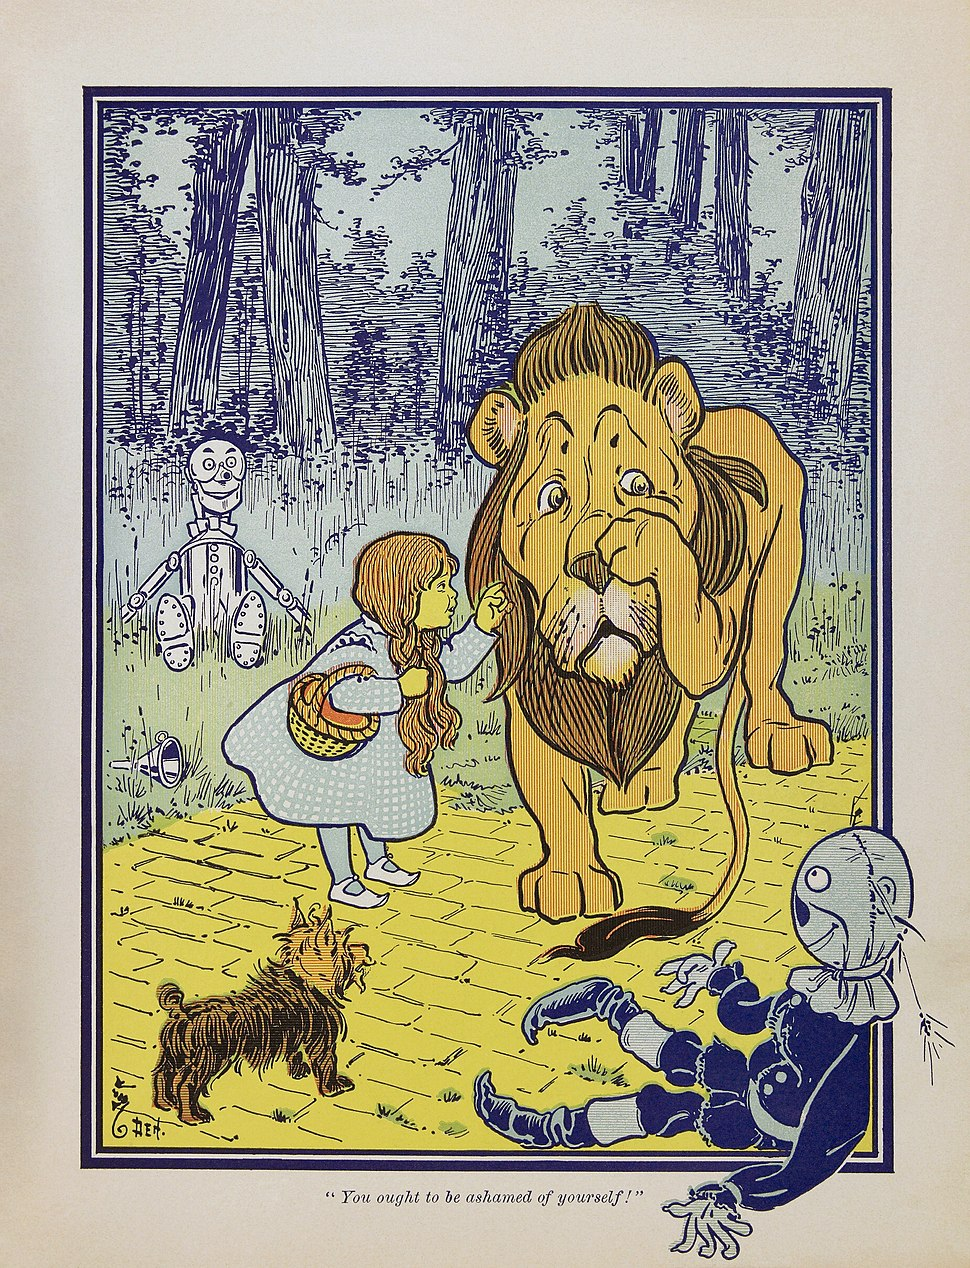 Cowardly lion2